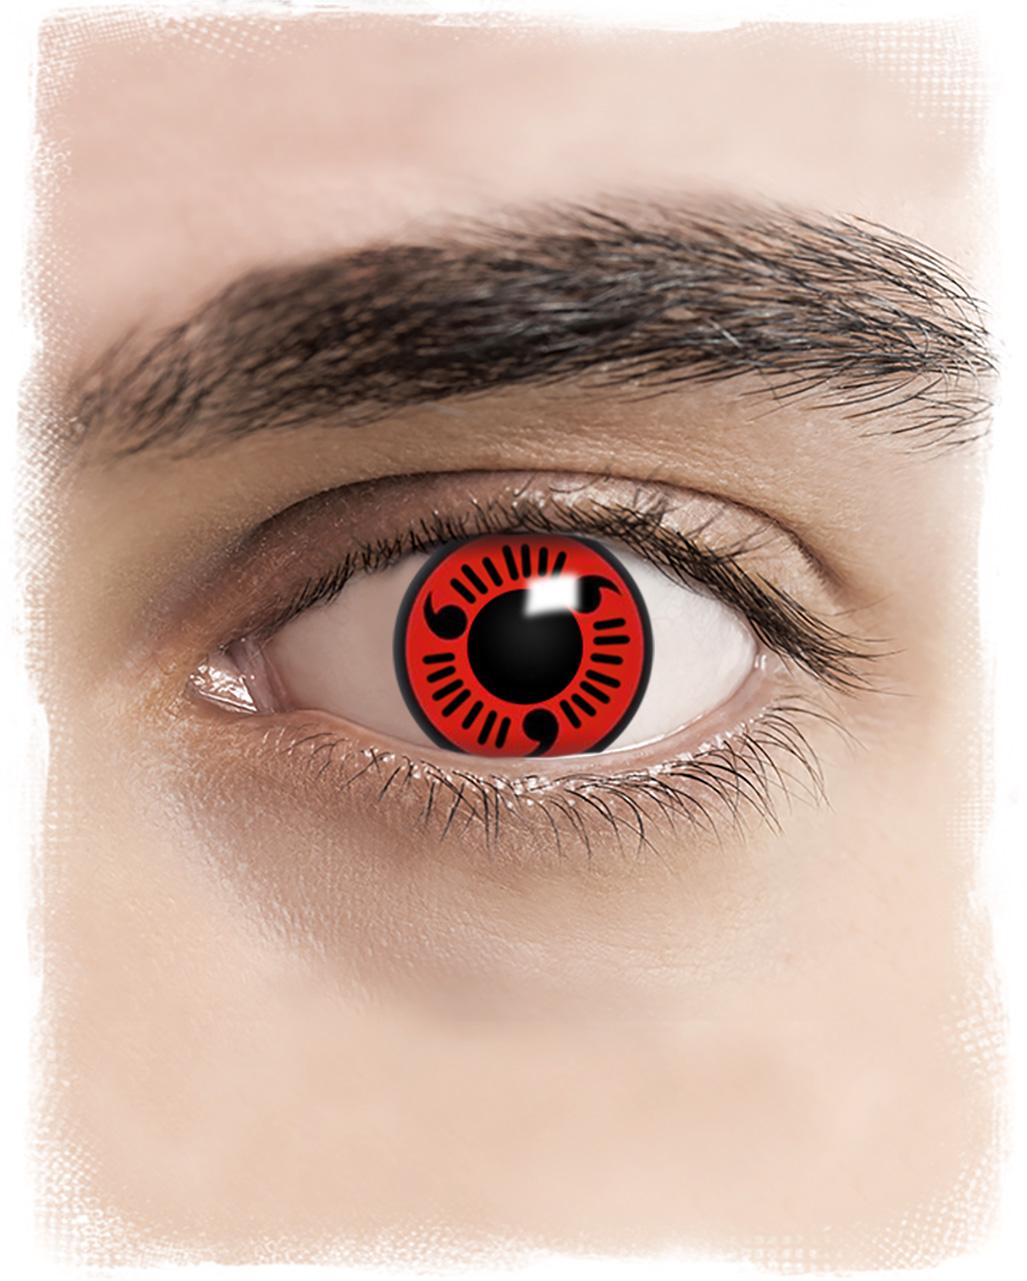 Sharingan - lenses for courageous people